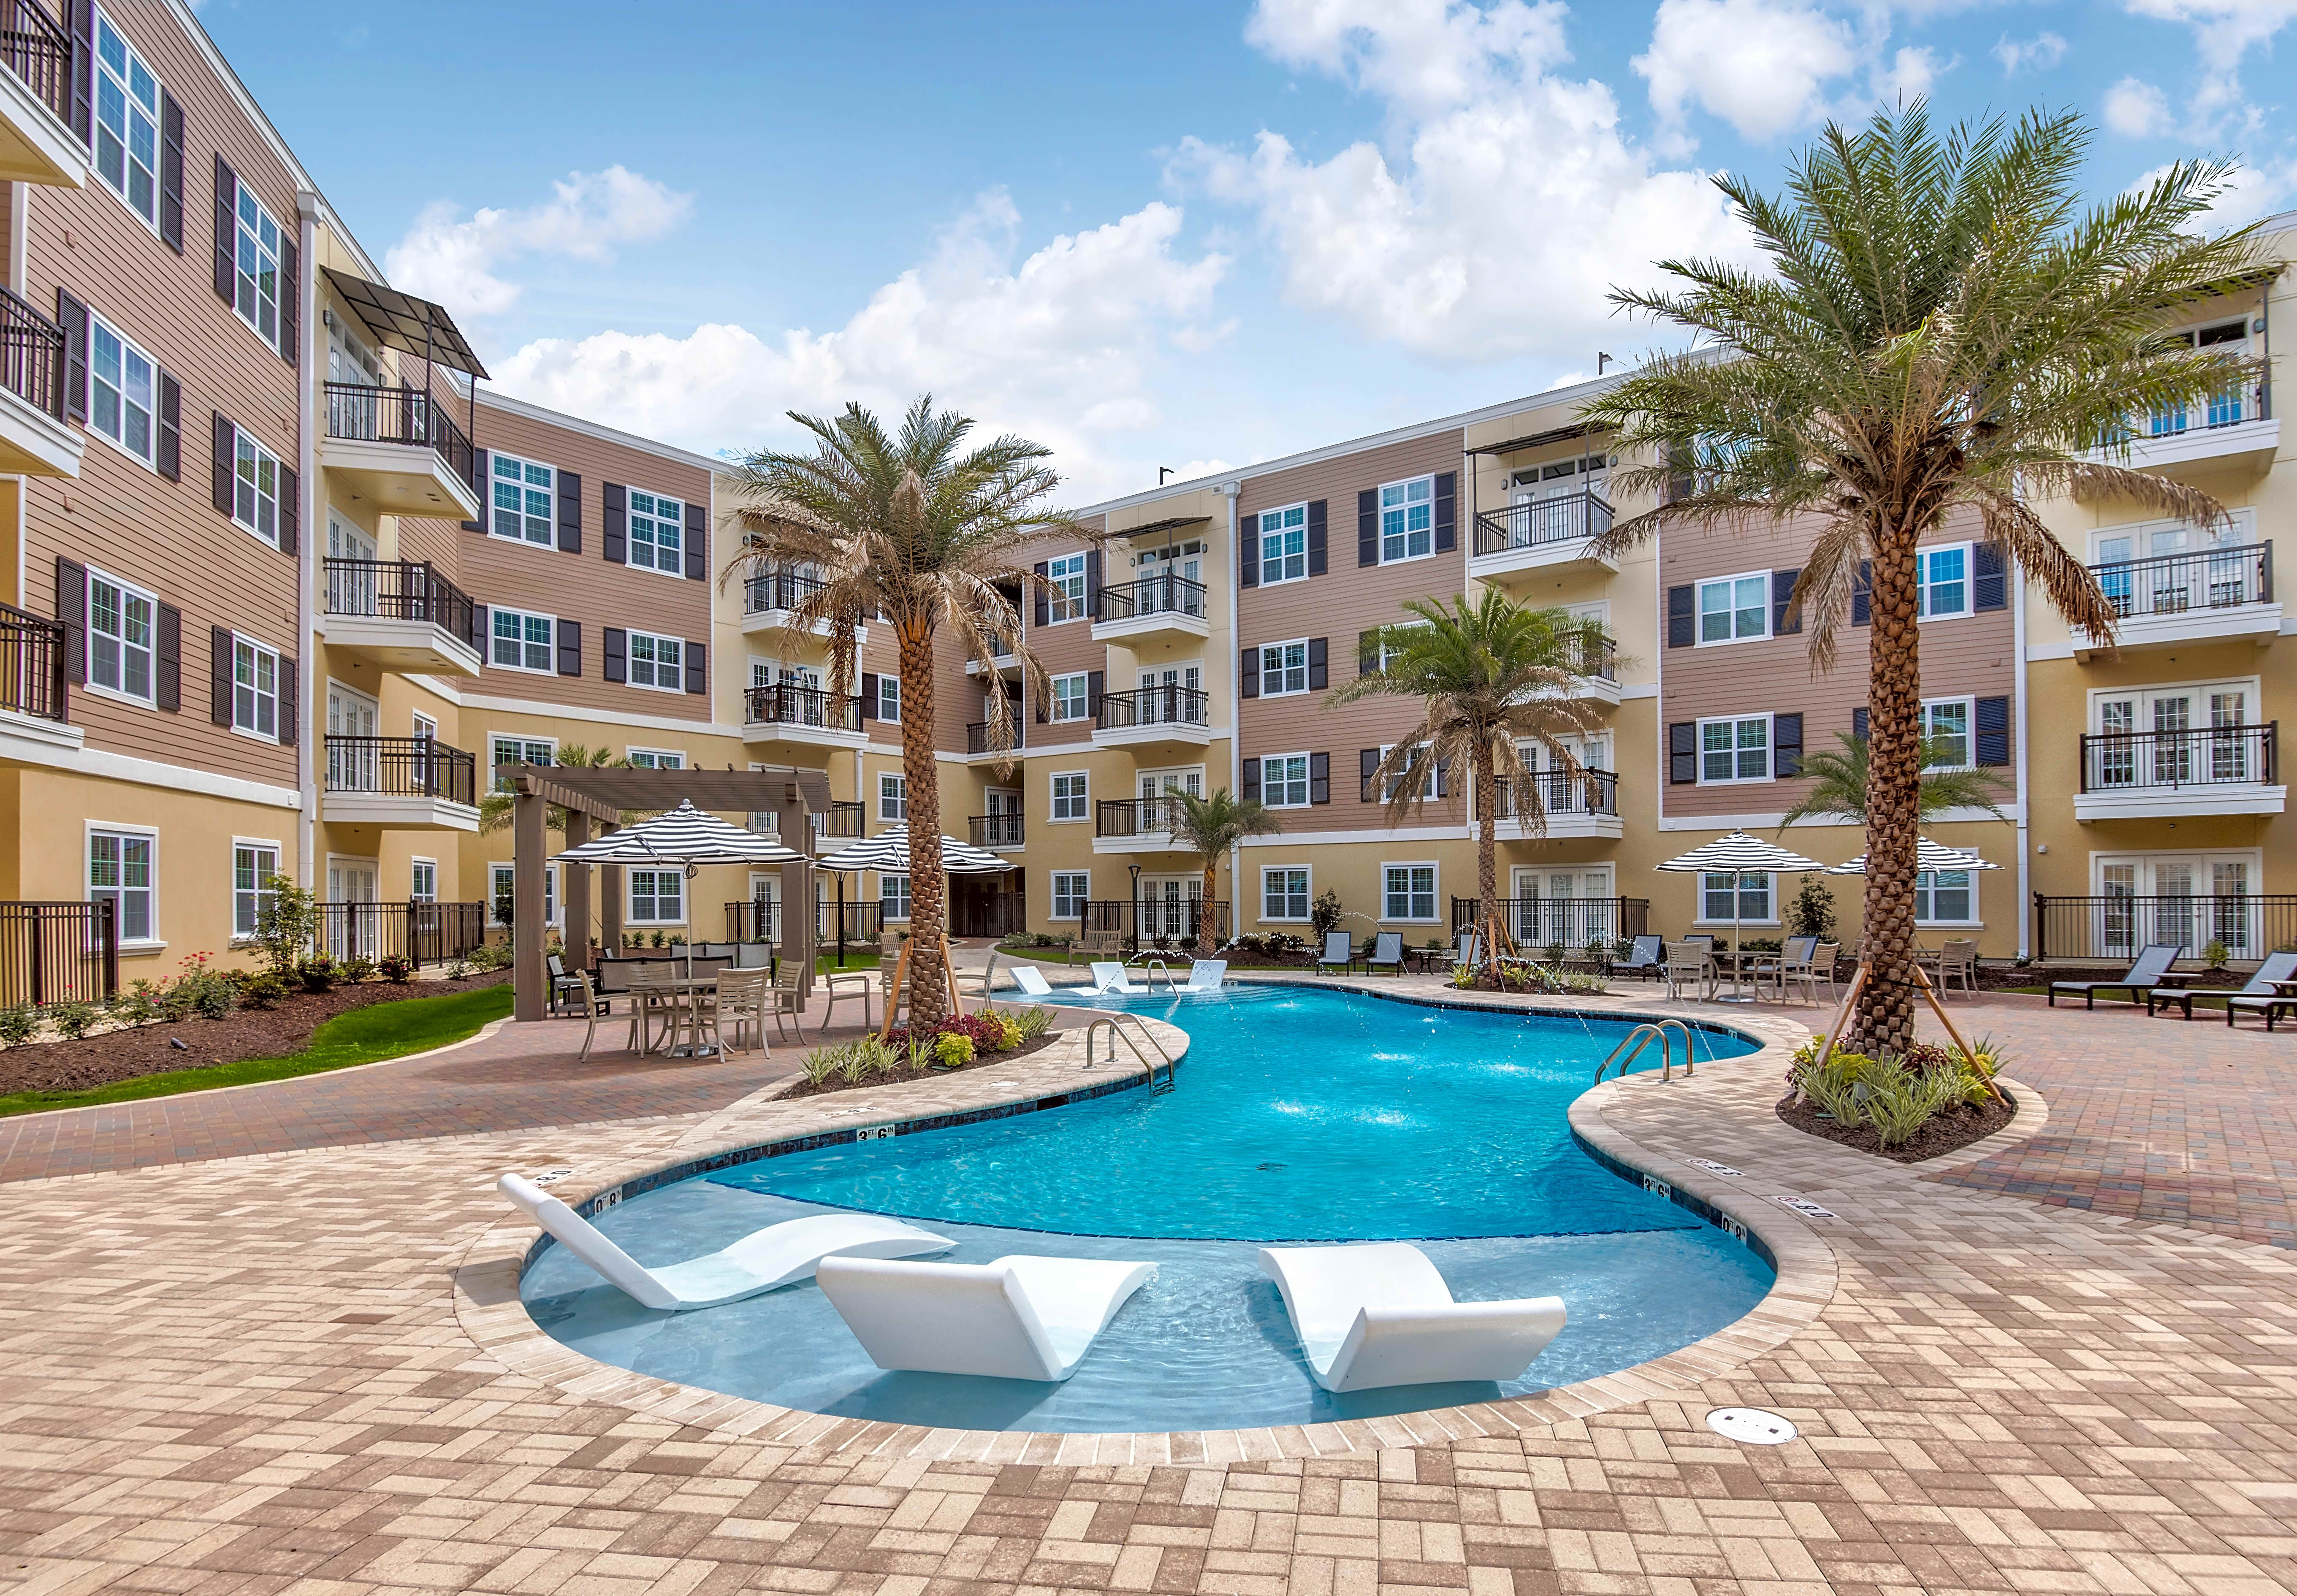 Apartments Near Southern Bayonne at Southshore for Southern University and A & M College Students in Baton Rouge, LA